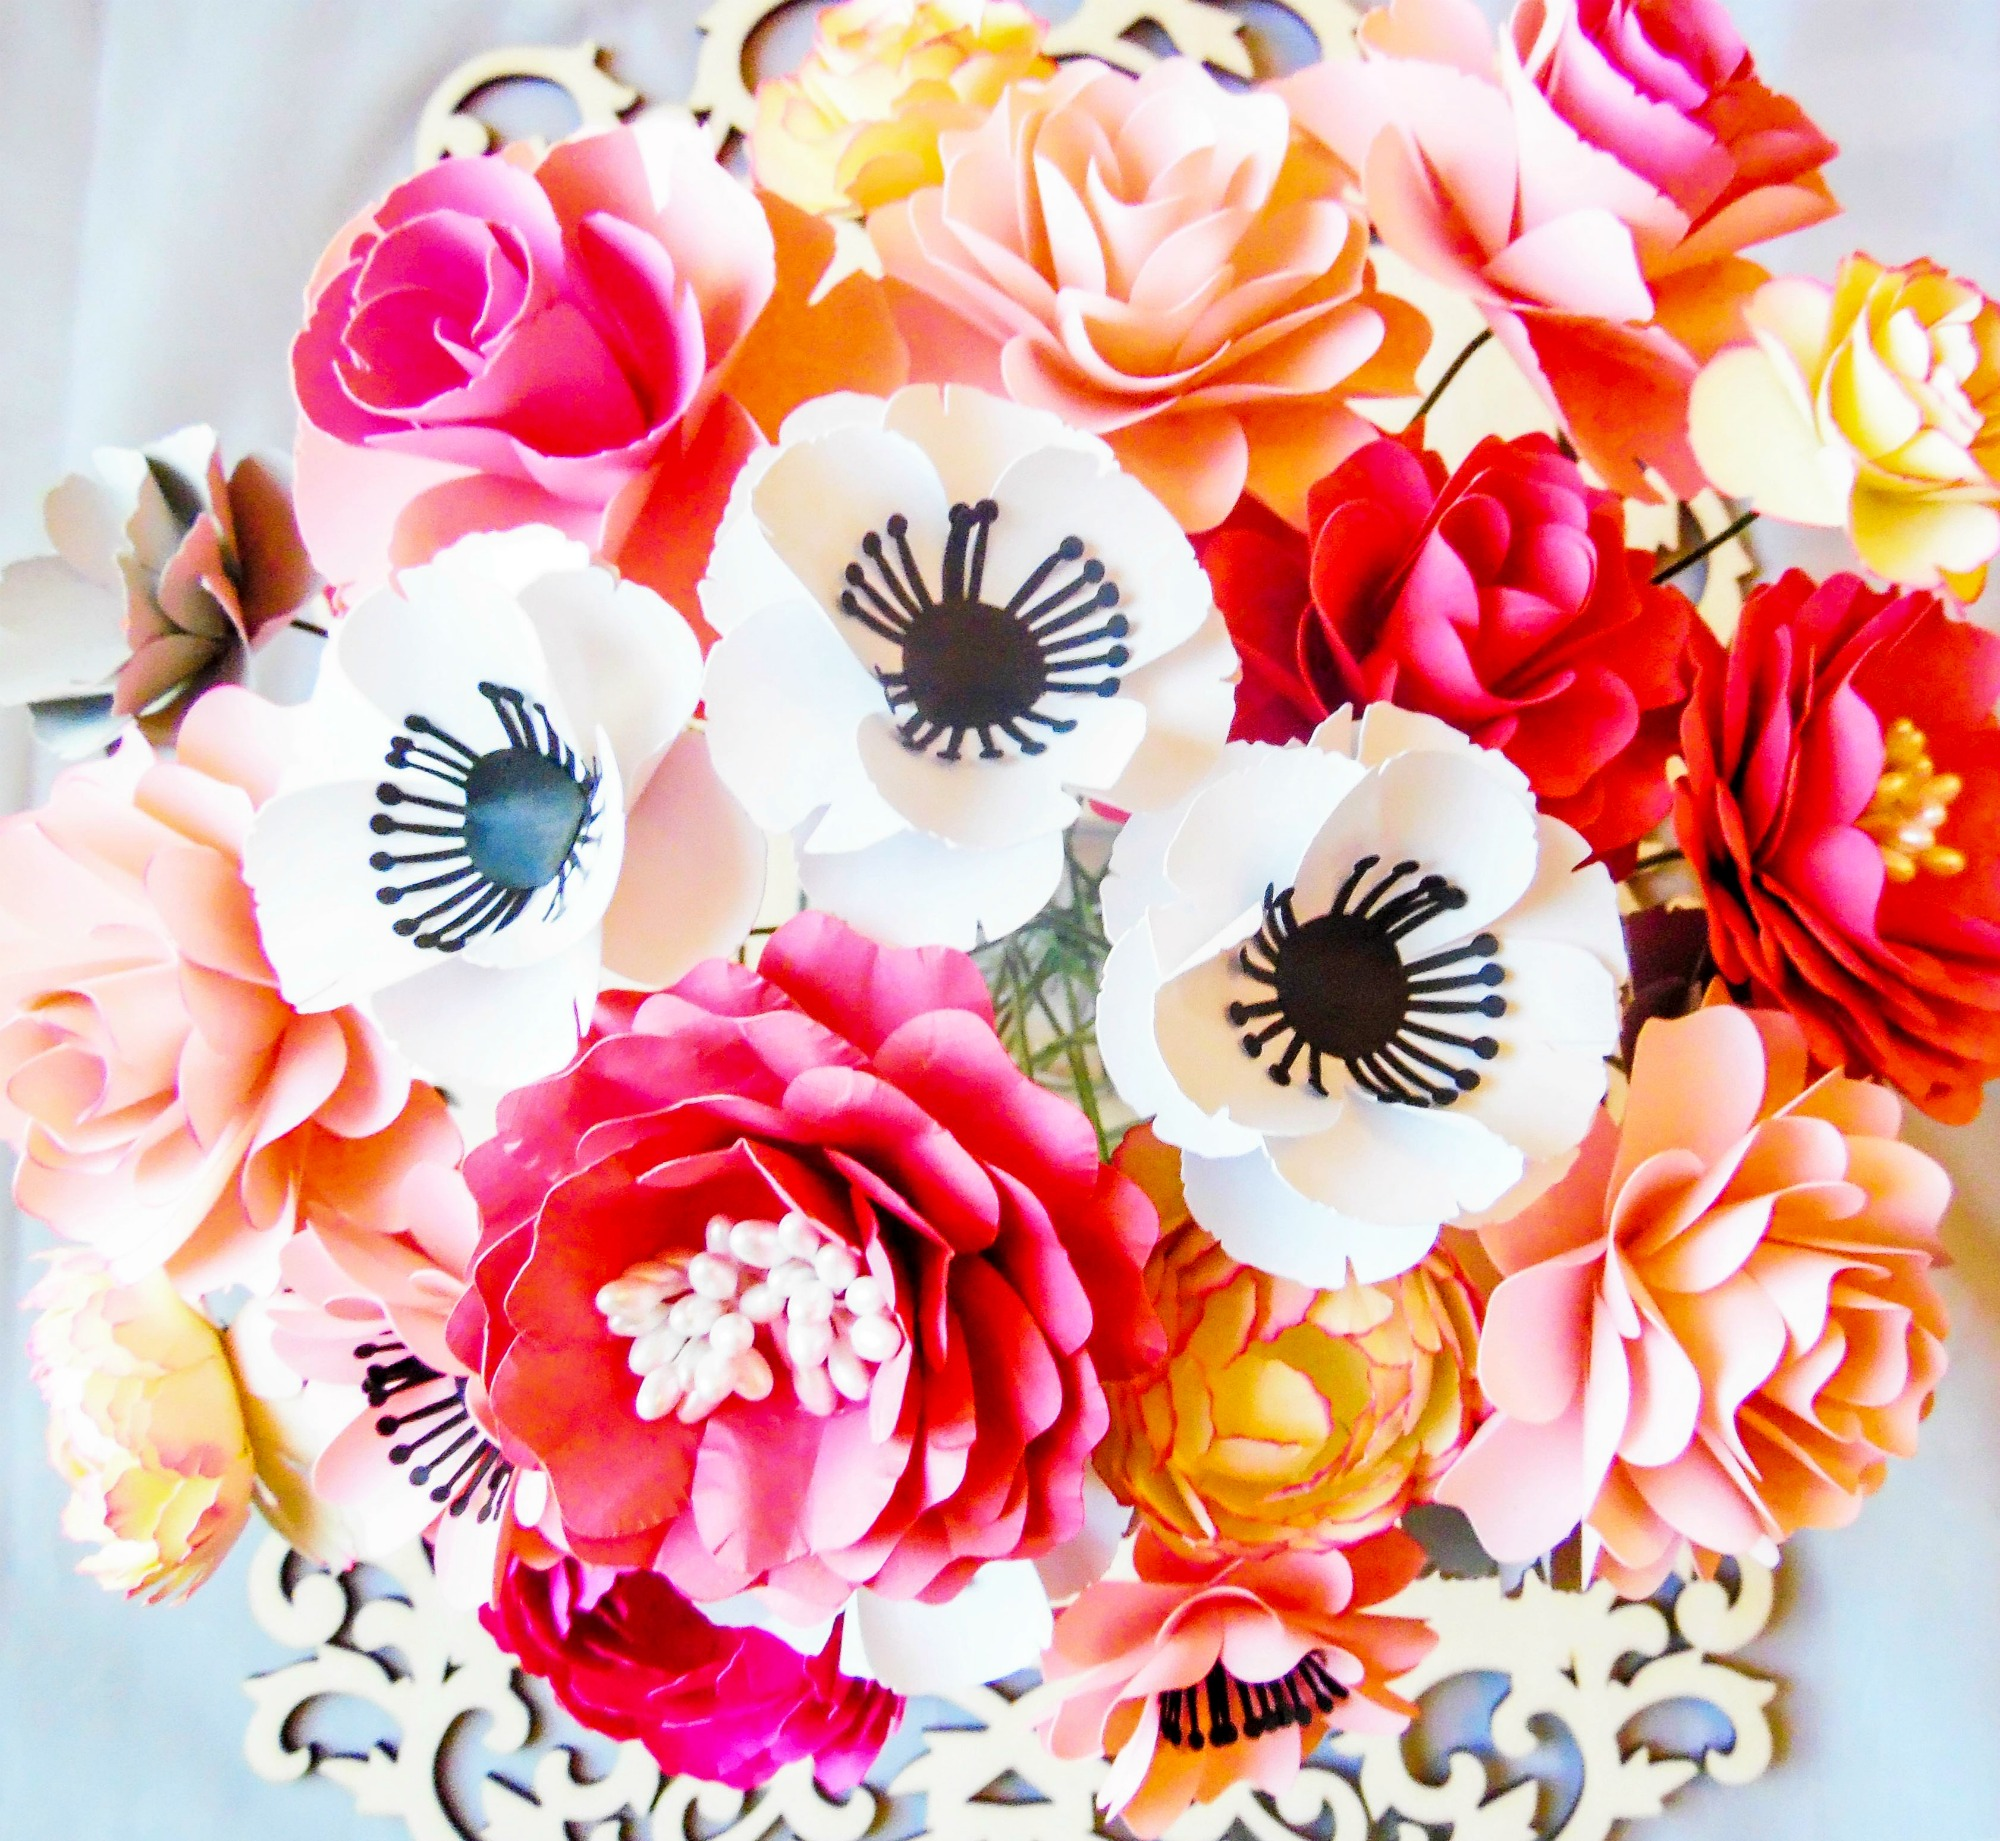 How To Make Stems For Paper Flowers Diy Paper Flowers